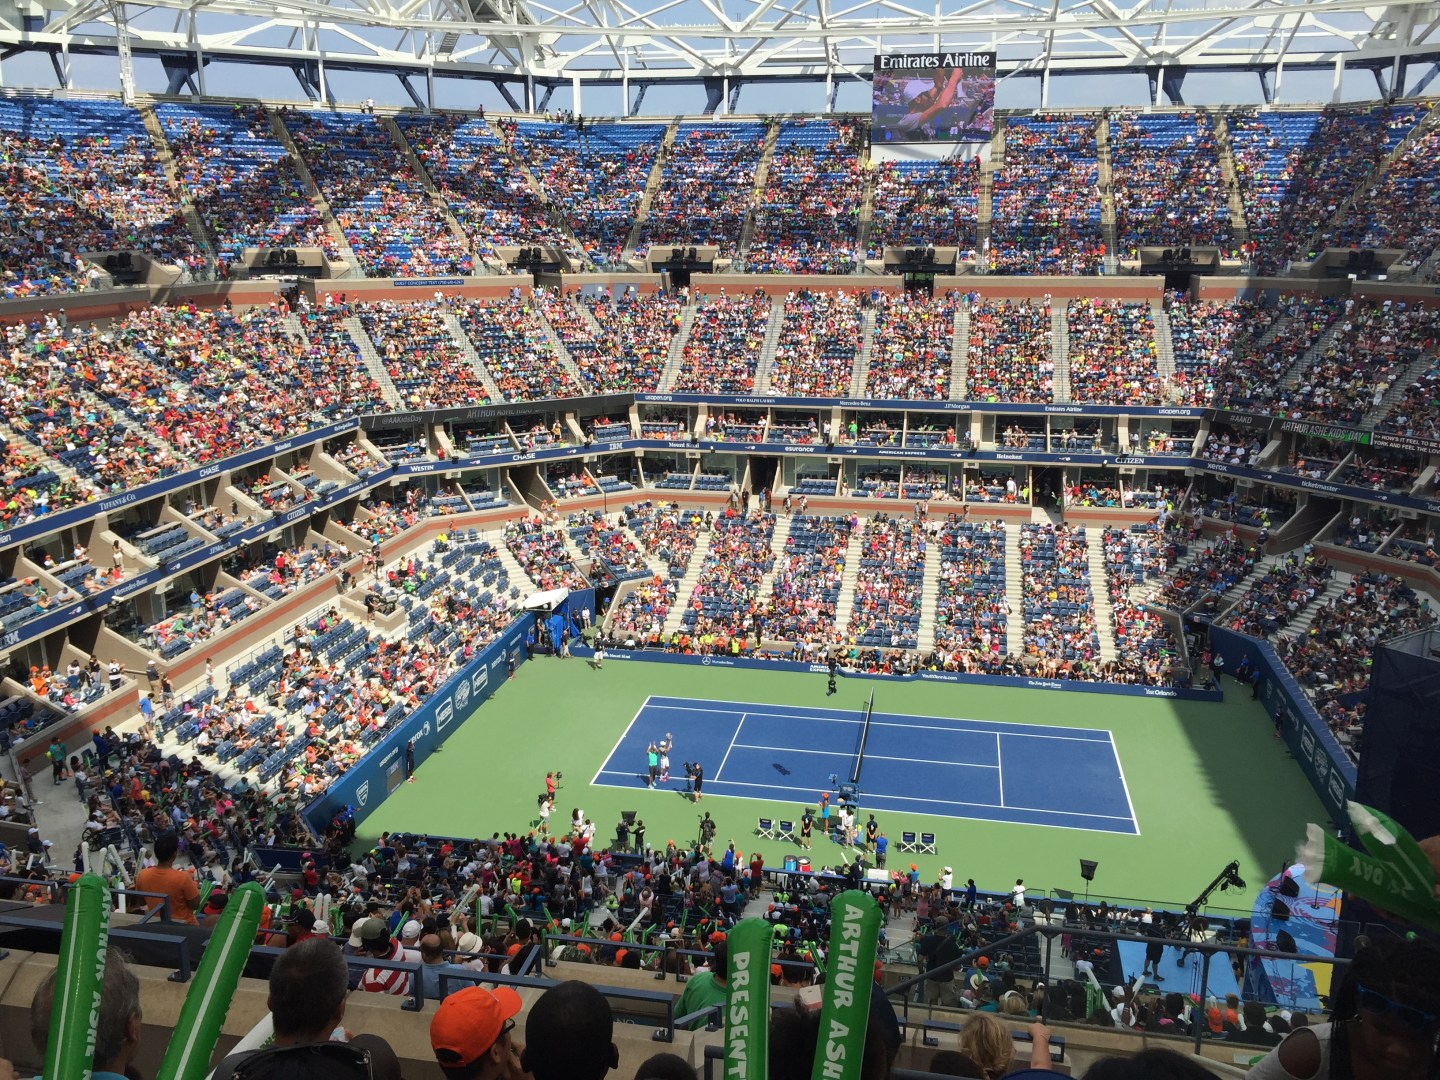 U.S. Open Kids' Day: The Good, the Bad and How to Prepare